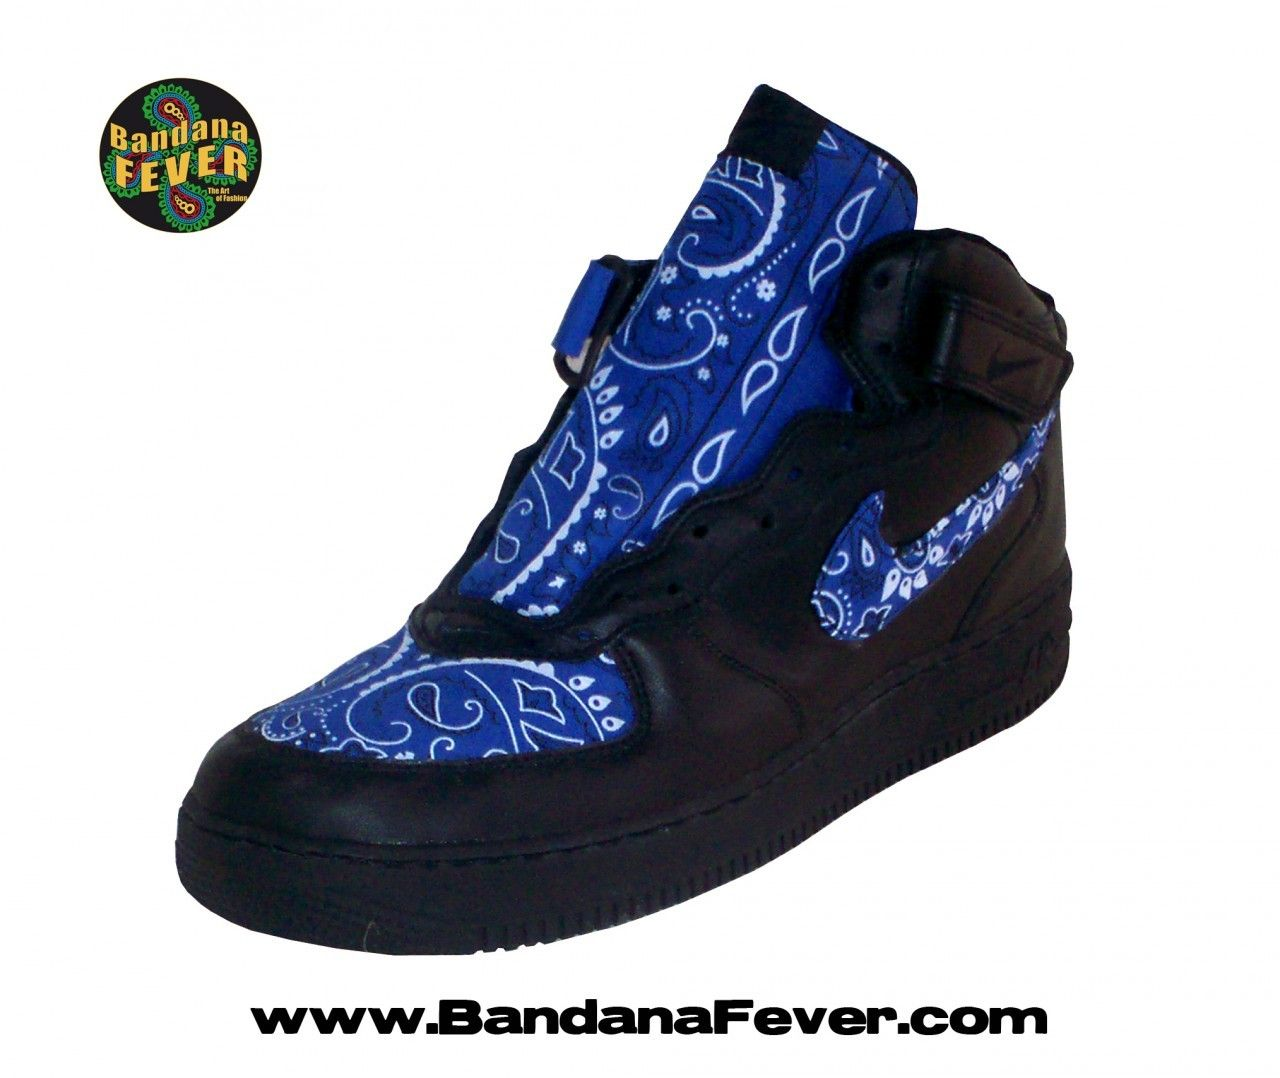 finest selection 2bf6e 0a9a3 Bandana Fever - - Bandana Fever Custom Bandana Nike Air Force 1 Mid Black  Royal Blue Bandana,  264.99 (store.bandanafeve...)